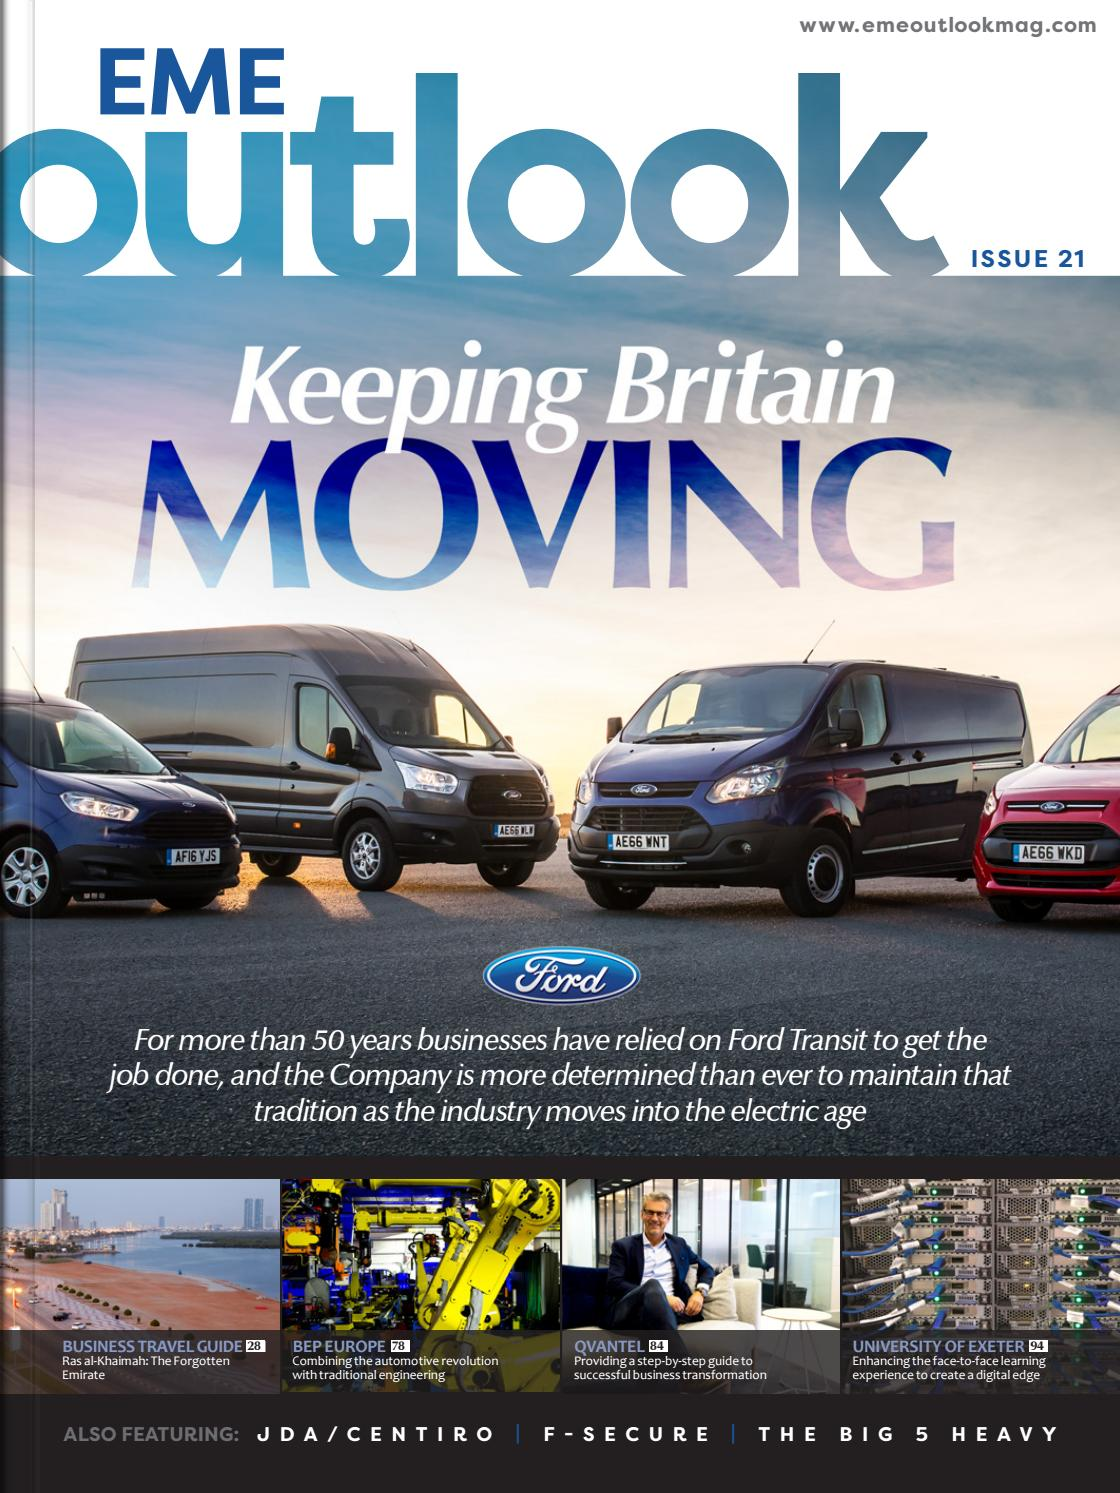 0a43c2917dc7 EME Outlook - Issue 21 by Outlook Publishing - issuu